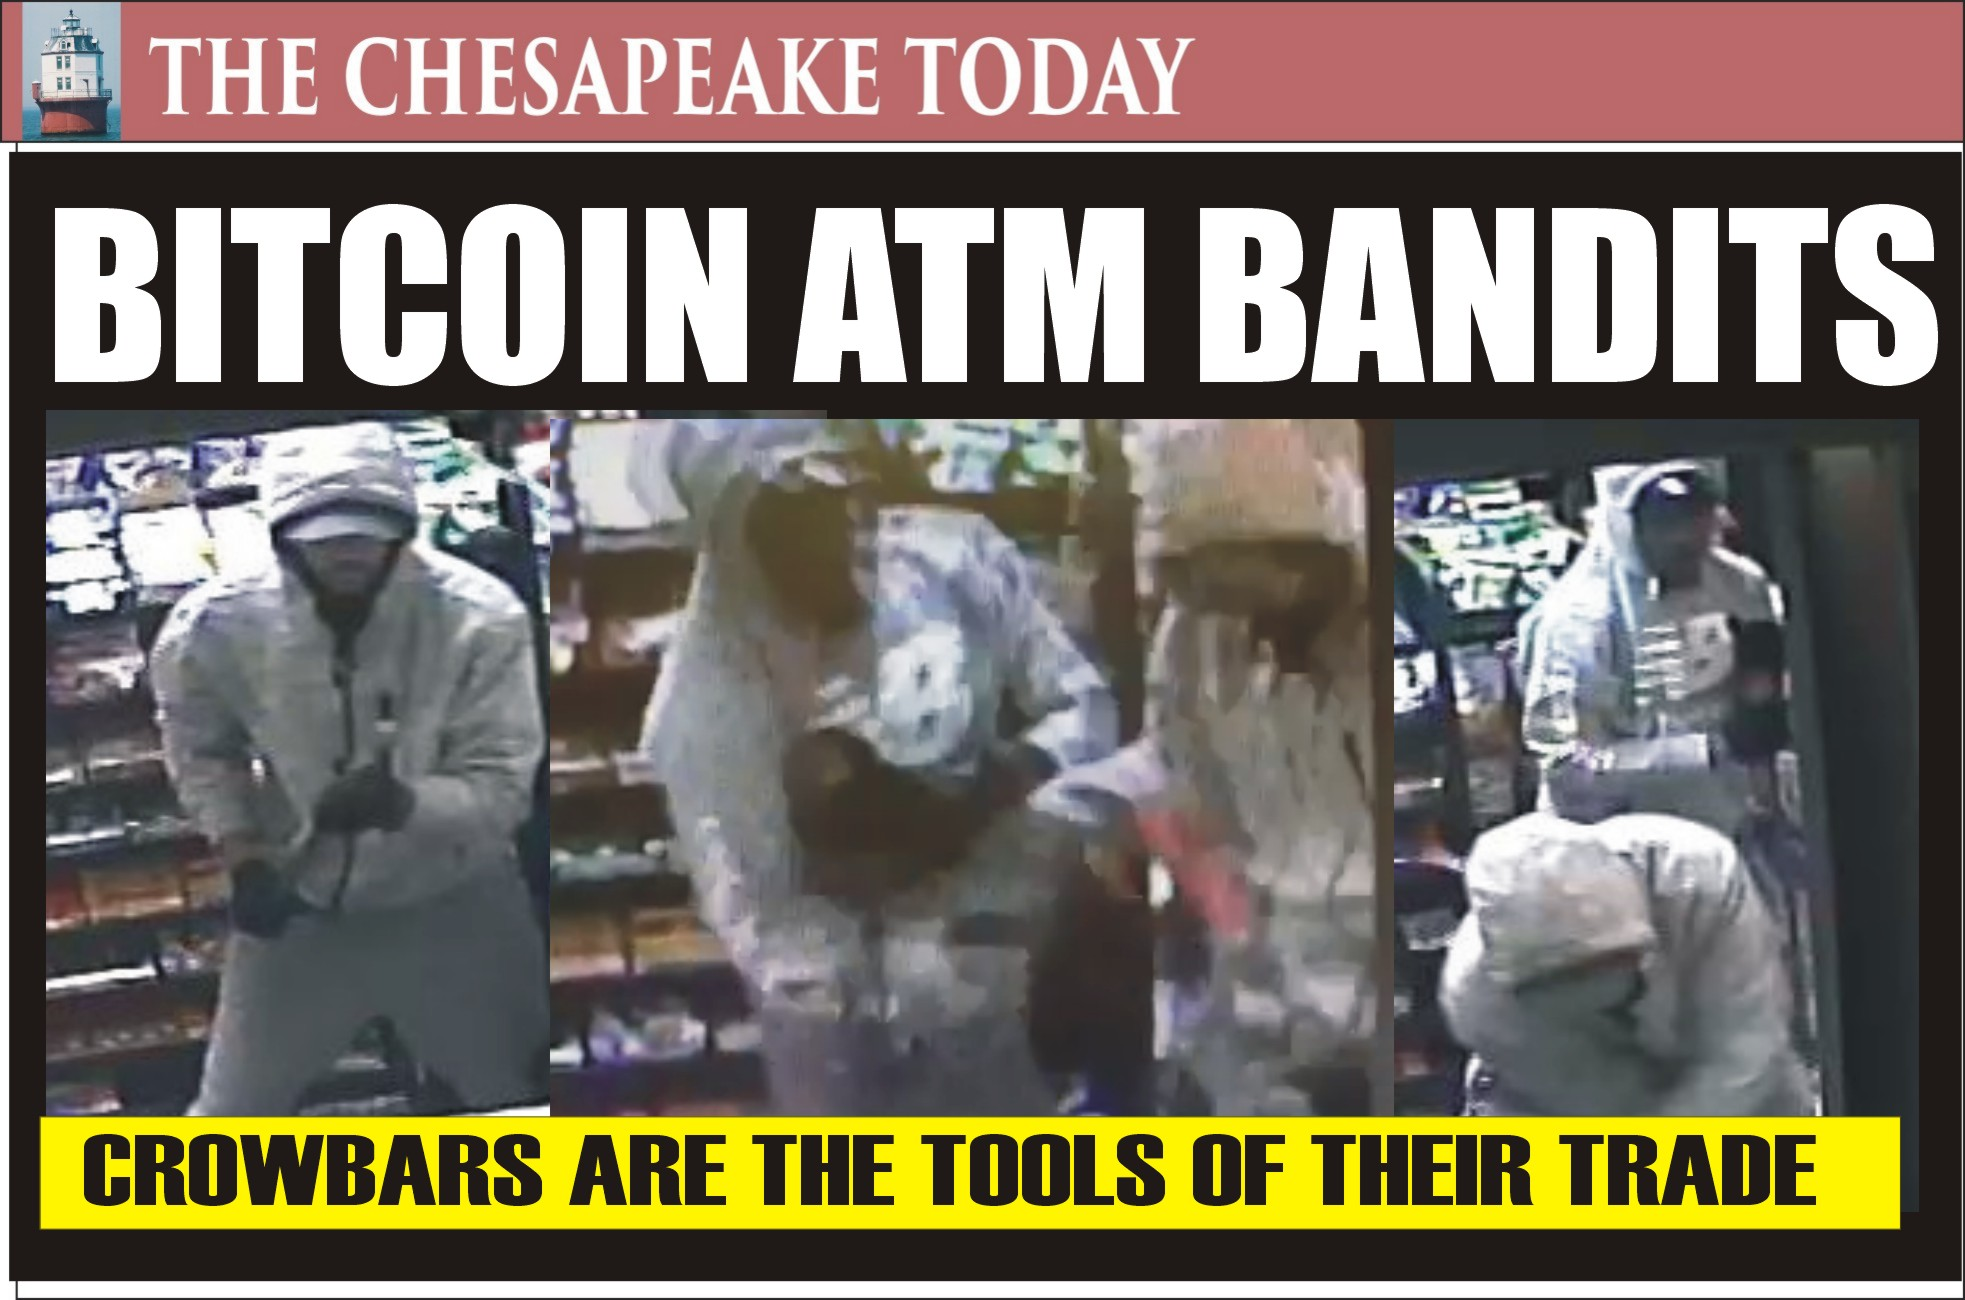 BITCOIN ATM BANDITS: Montgomery County Police seek tips to track down these hoodlums brandishing crowbar